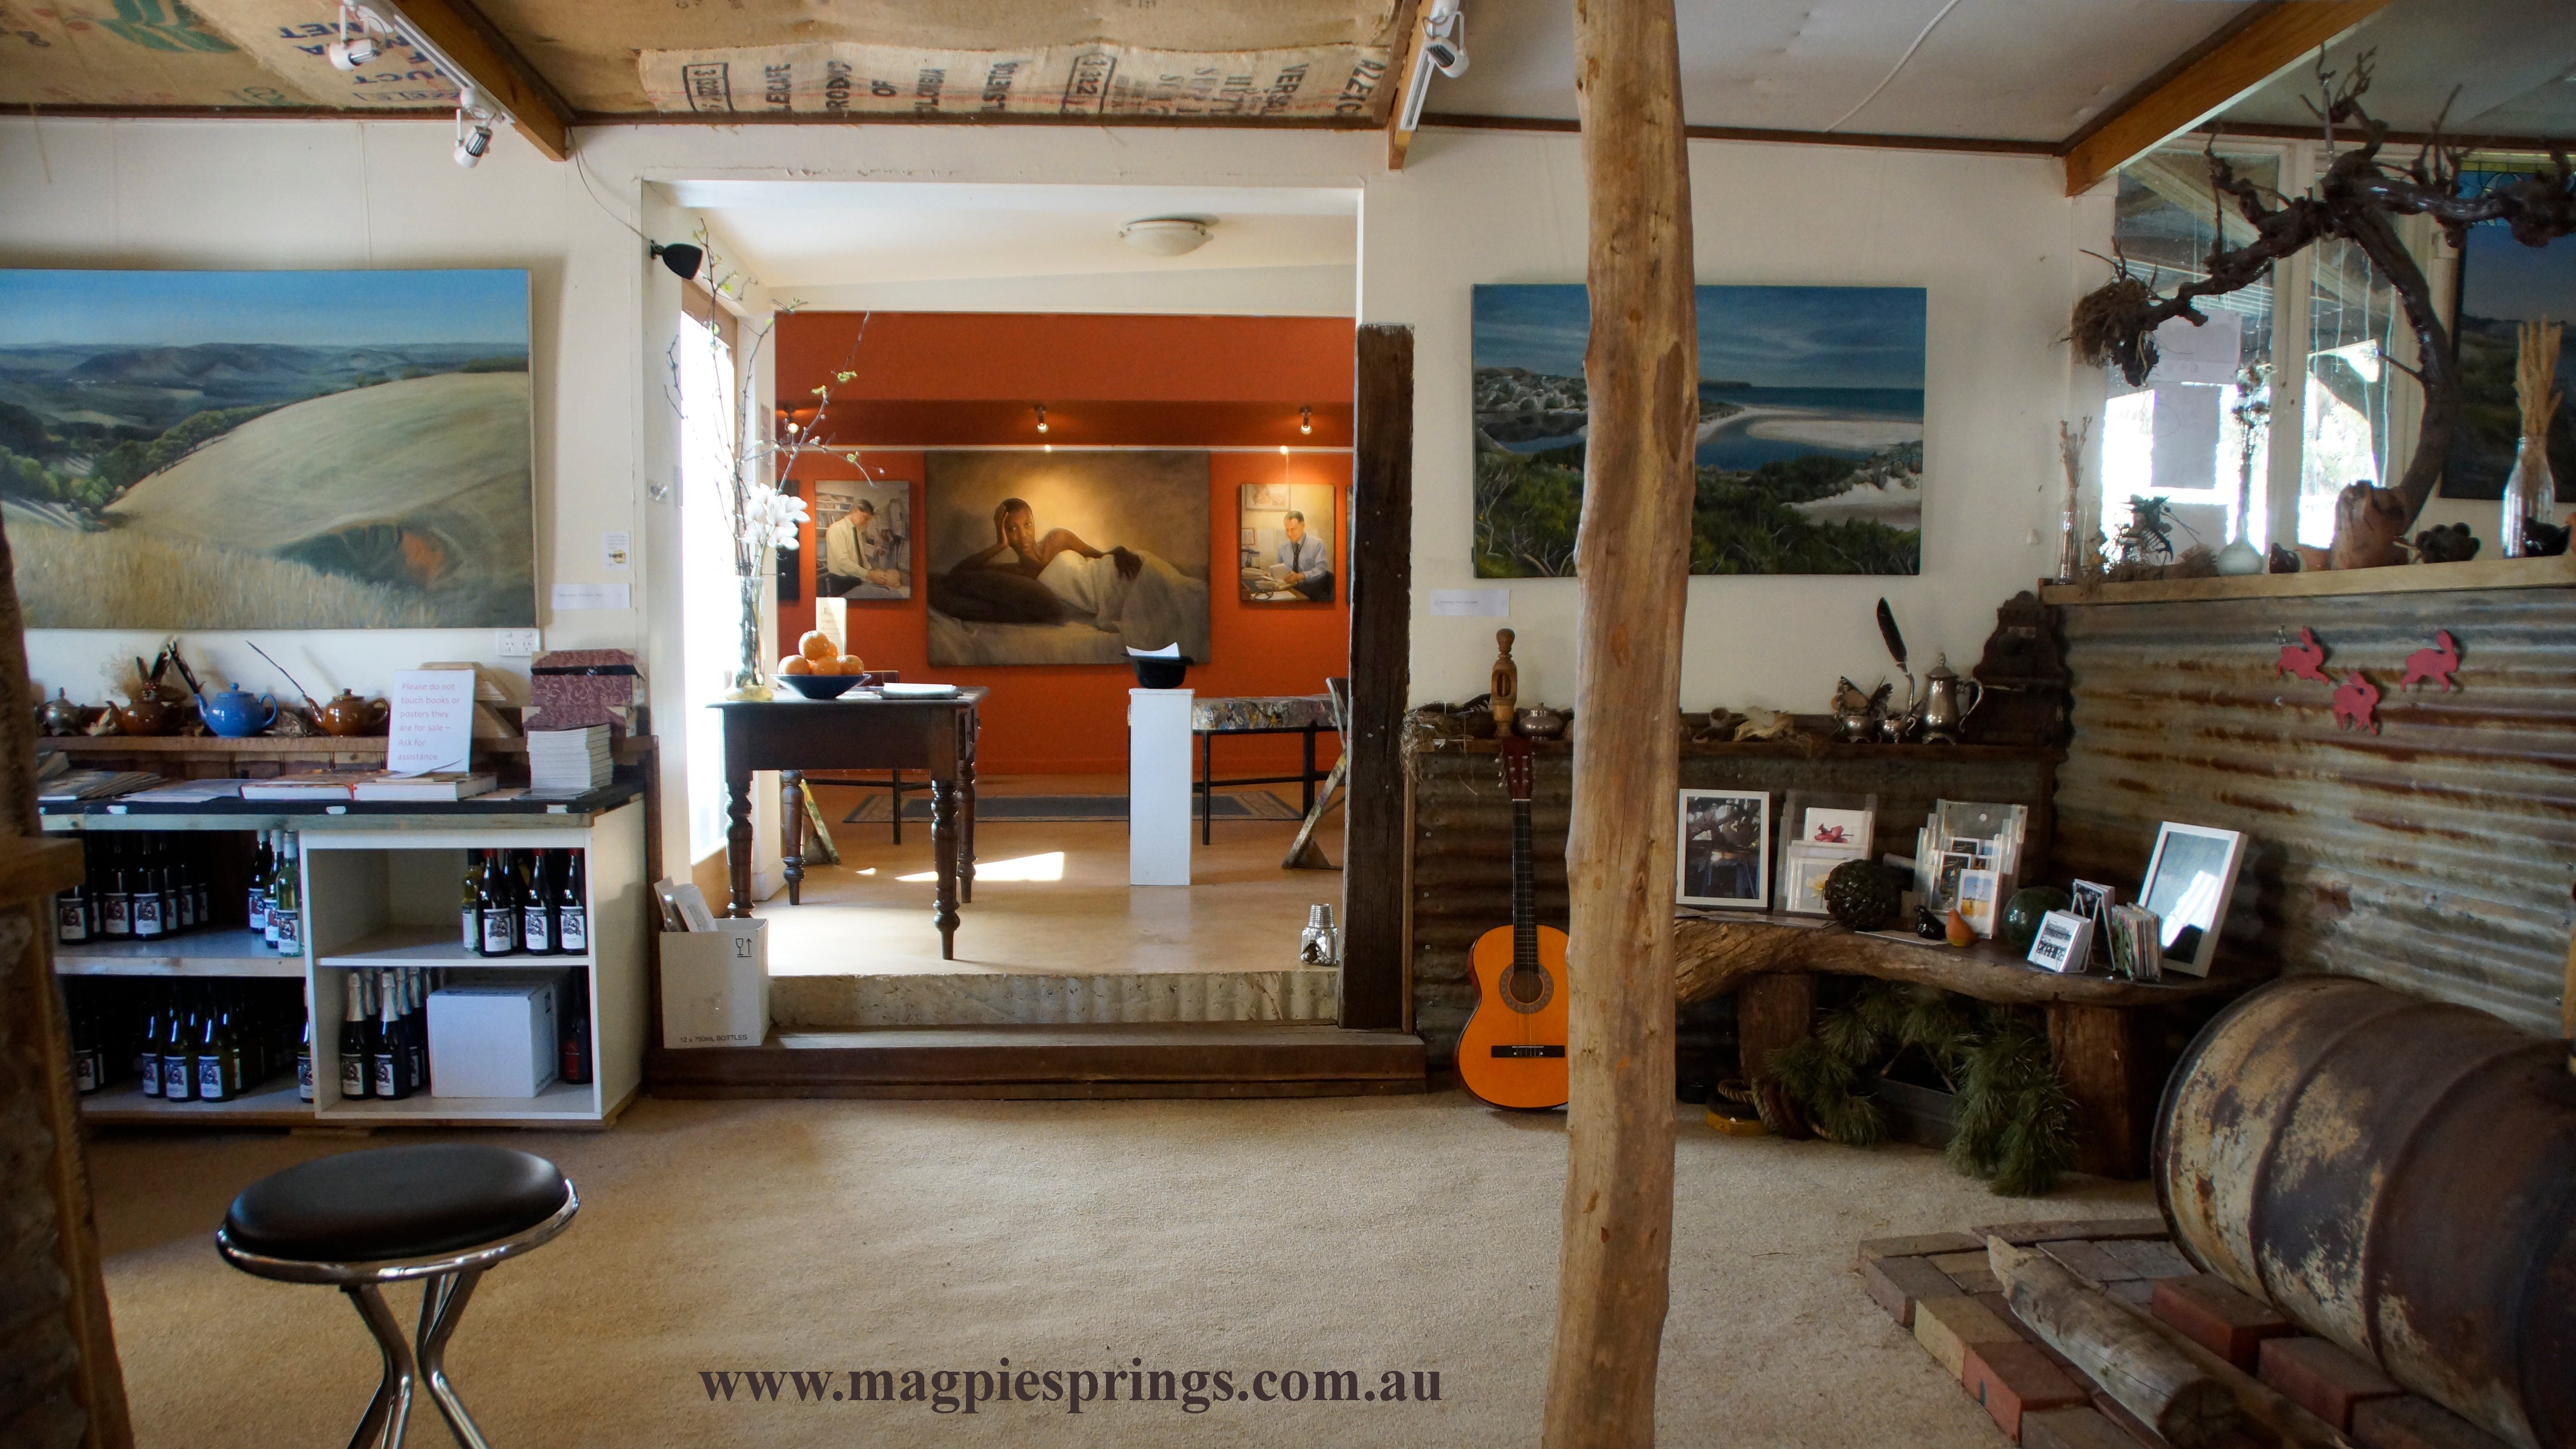 Magpie Springs gallery - Accommodation Sunshine Coast